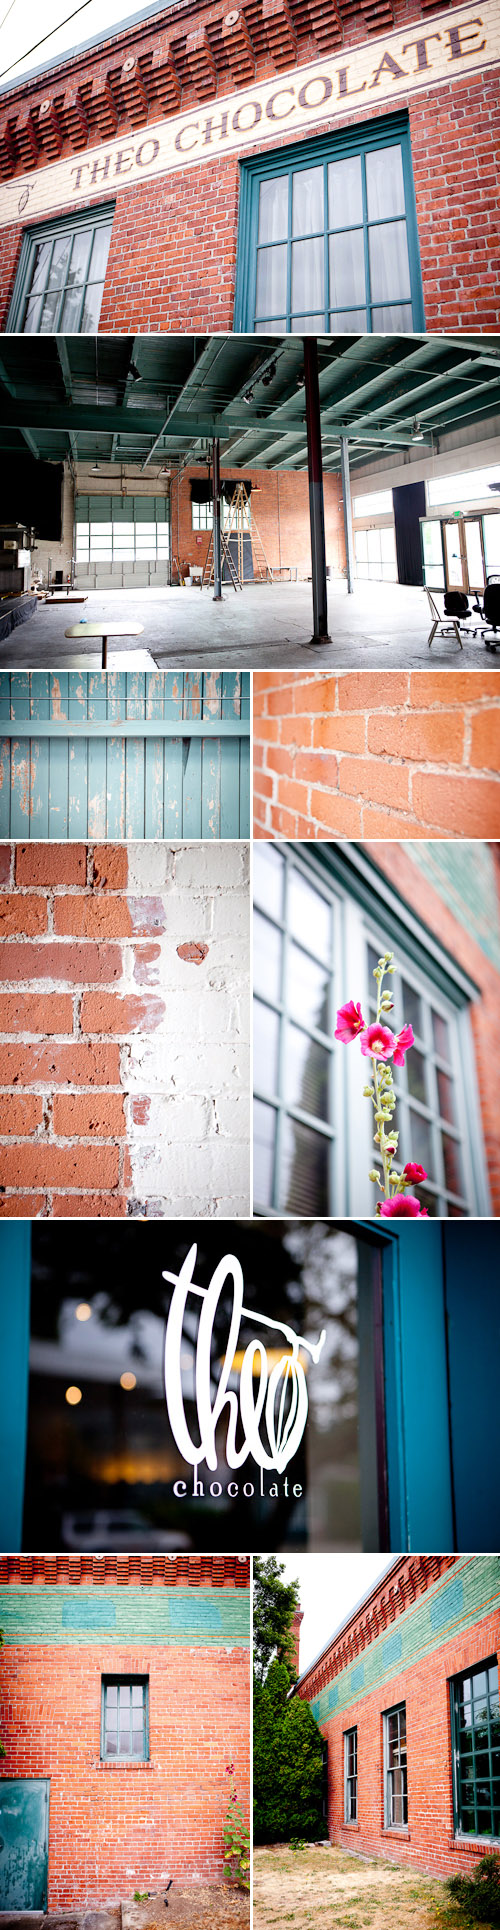 Theo Chocolate warehouse 4 week wedding location, alternative Seattle wedding venue, images by Junebug Weddings